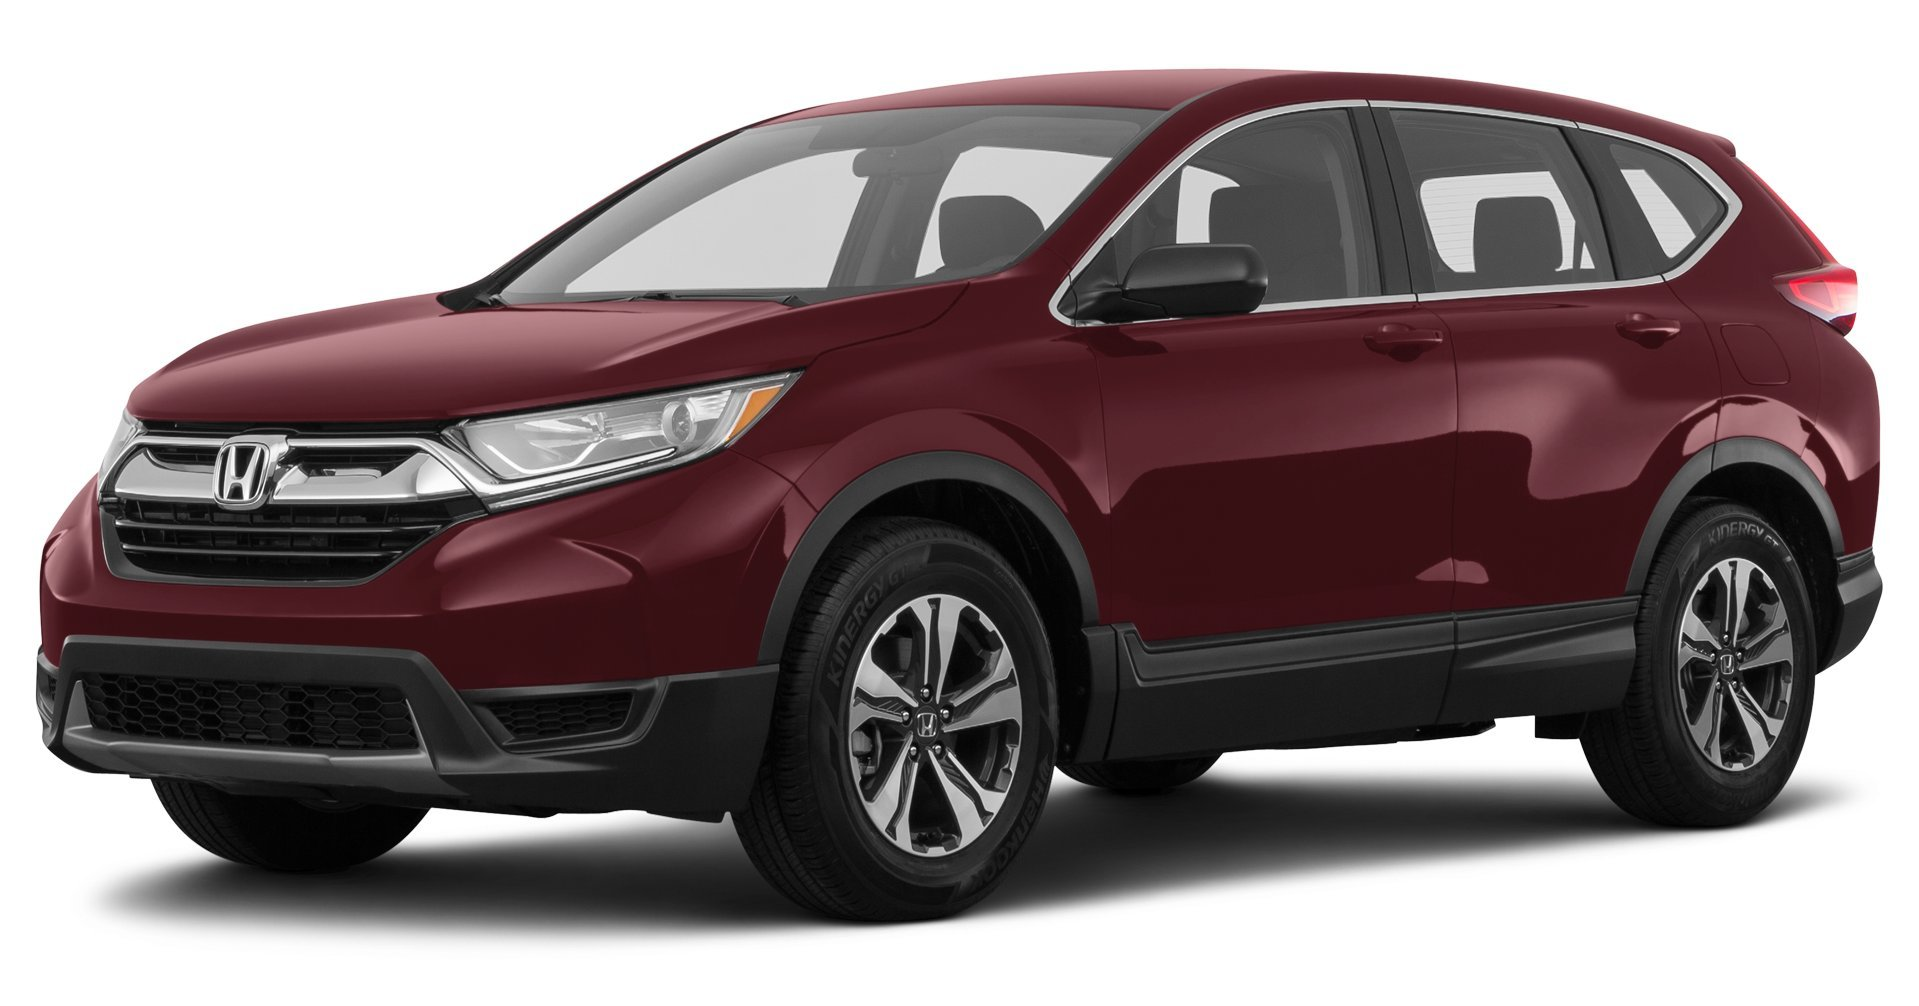 2017 honda cr v reviews images and specs for 2017 hyundai tucson vs 2017 honda crv